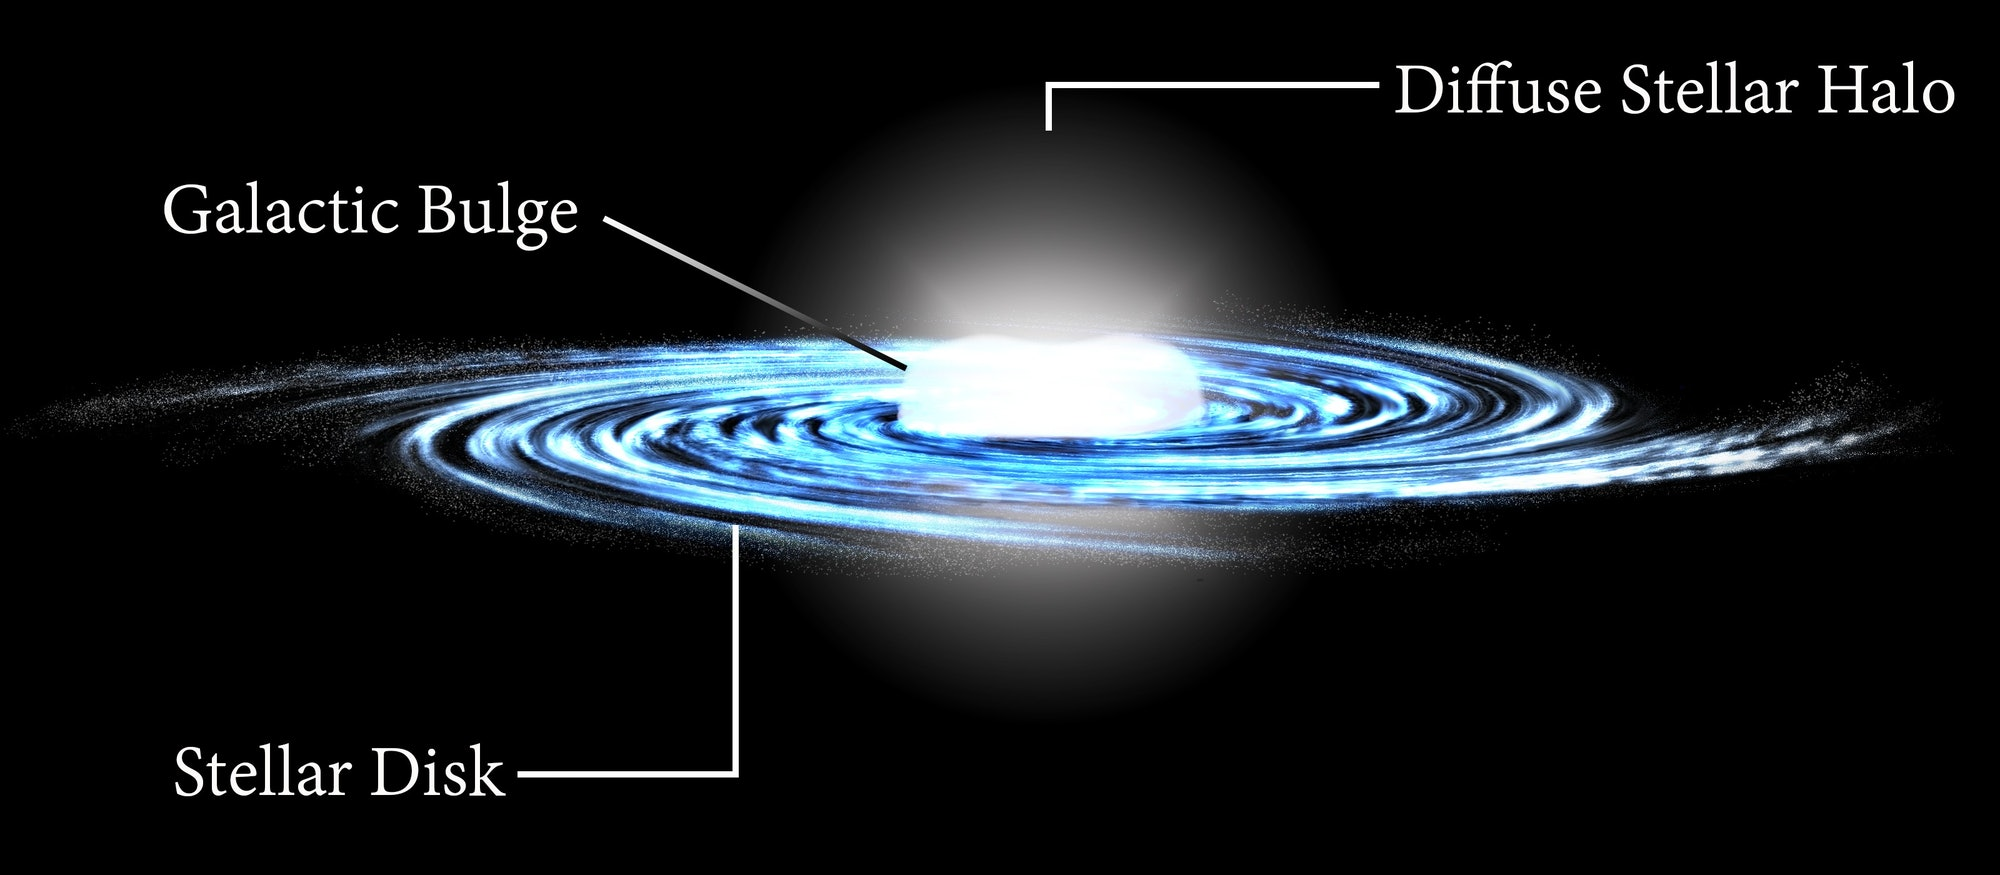 An artist's impression of the Milky Way, with the Galactic bulge at the center.